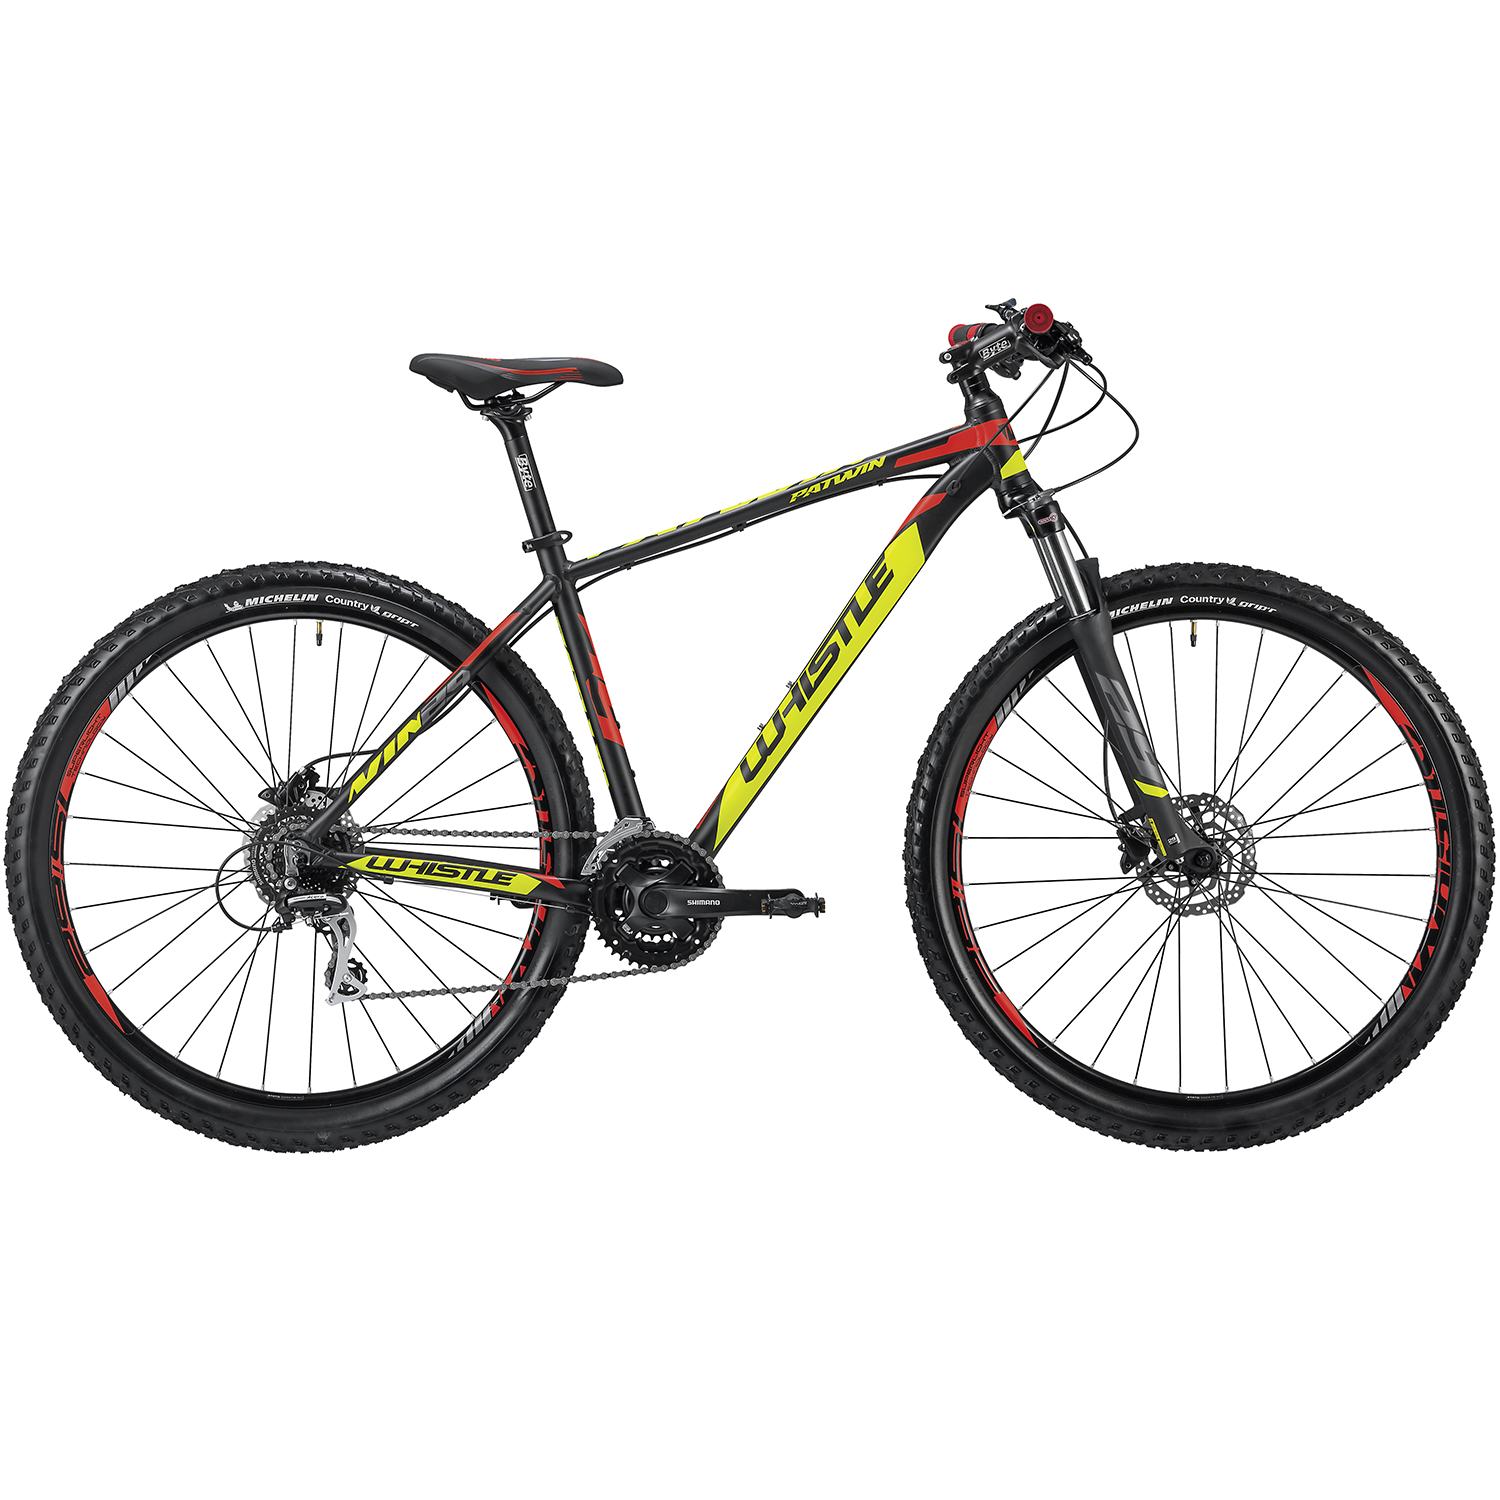 mountainbike 29 zoll whistle patwin 1833 mtb hardtail rad. Black Bedroom Furniture Sets. Home Design Ideas